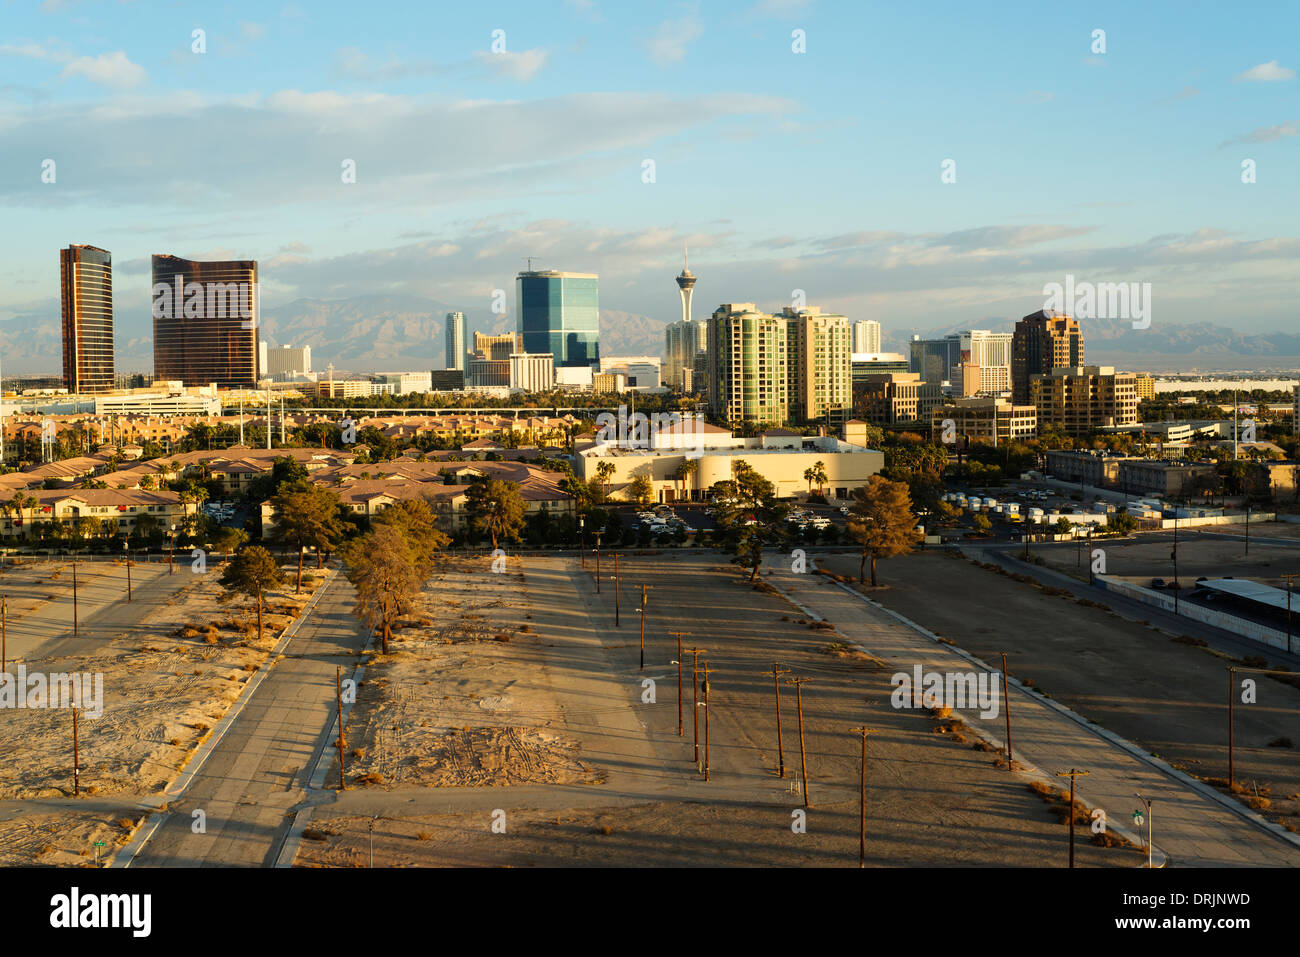 Las Vegas skyline with incomplete development in foreground. - Stock Image